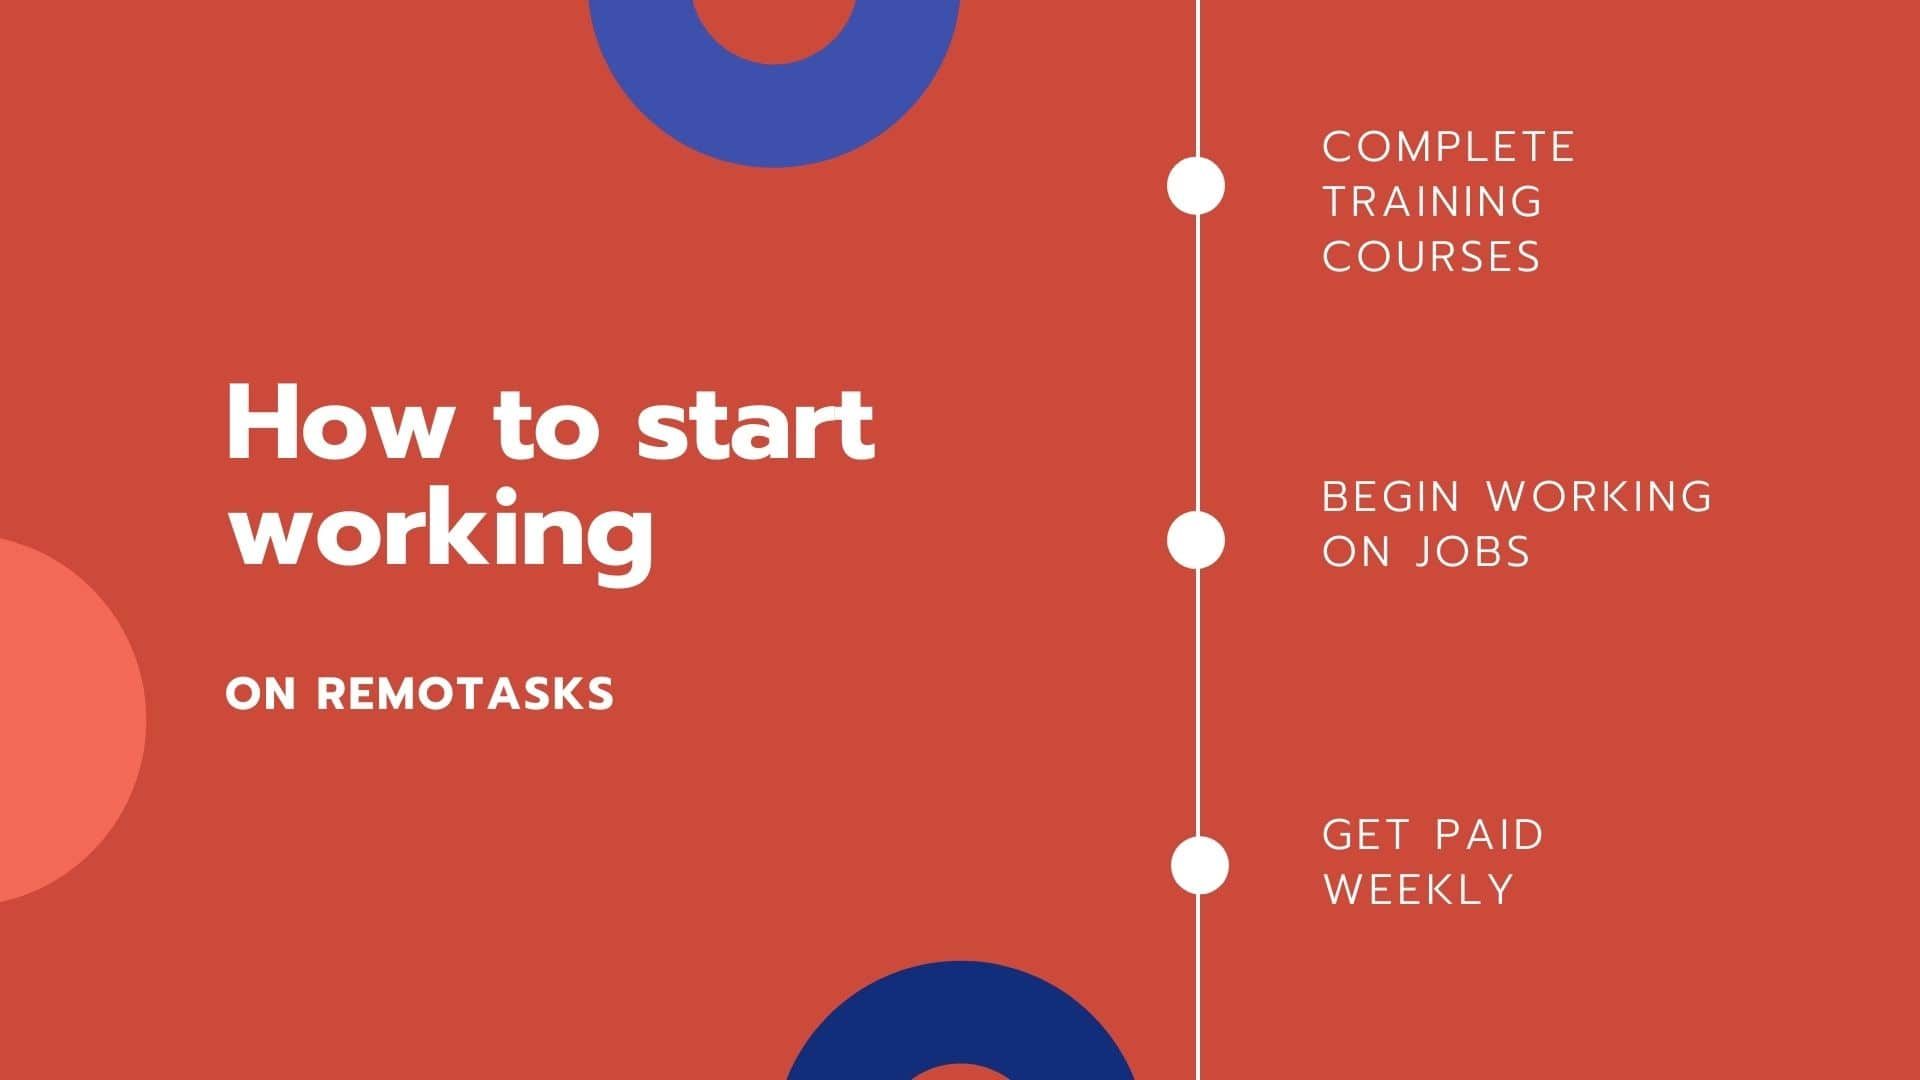 how to start working in remotasks